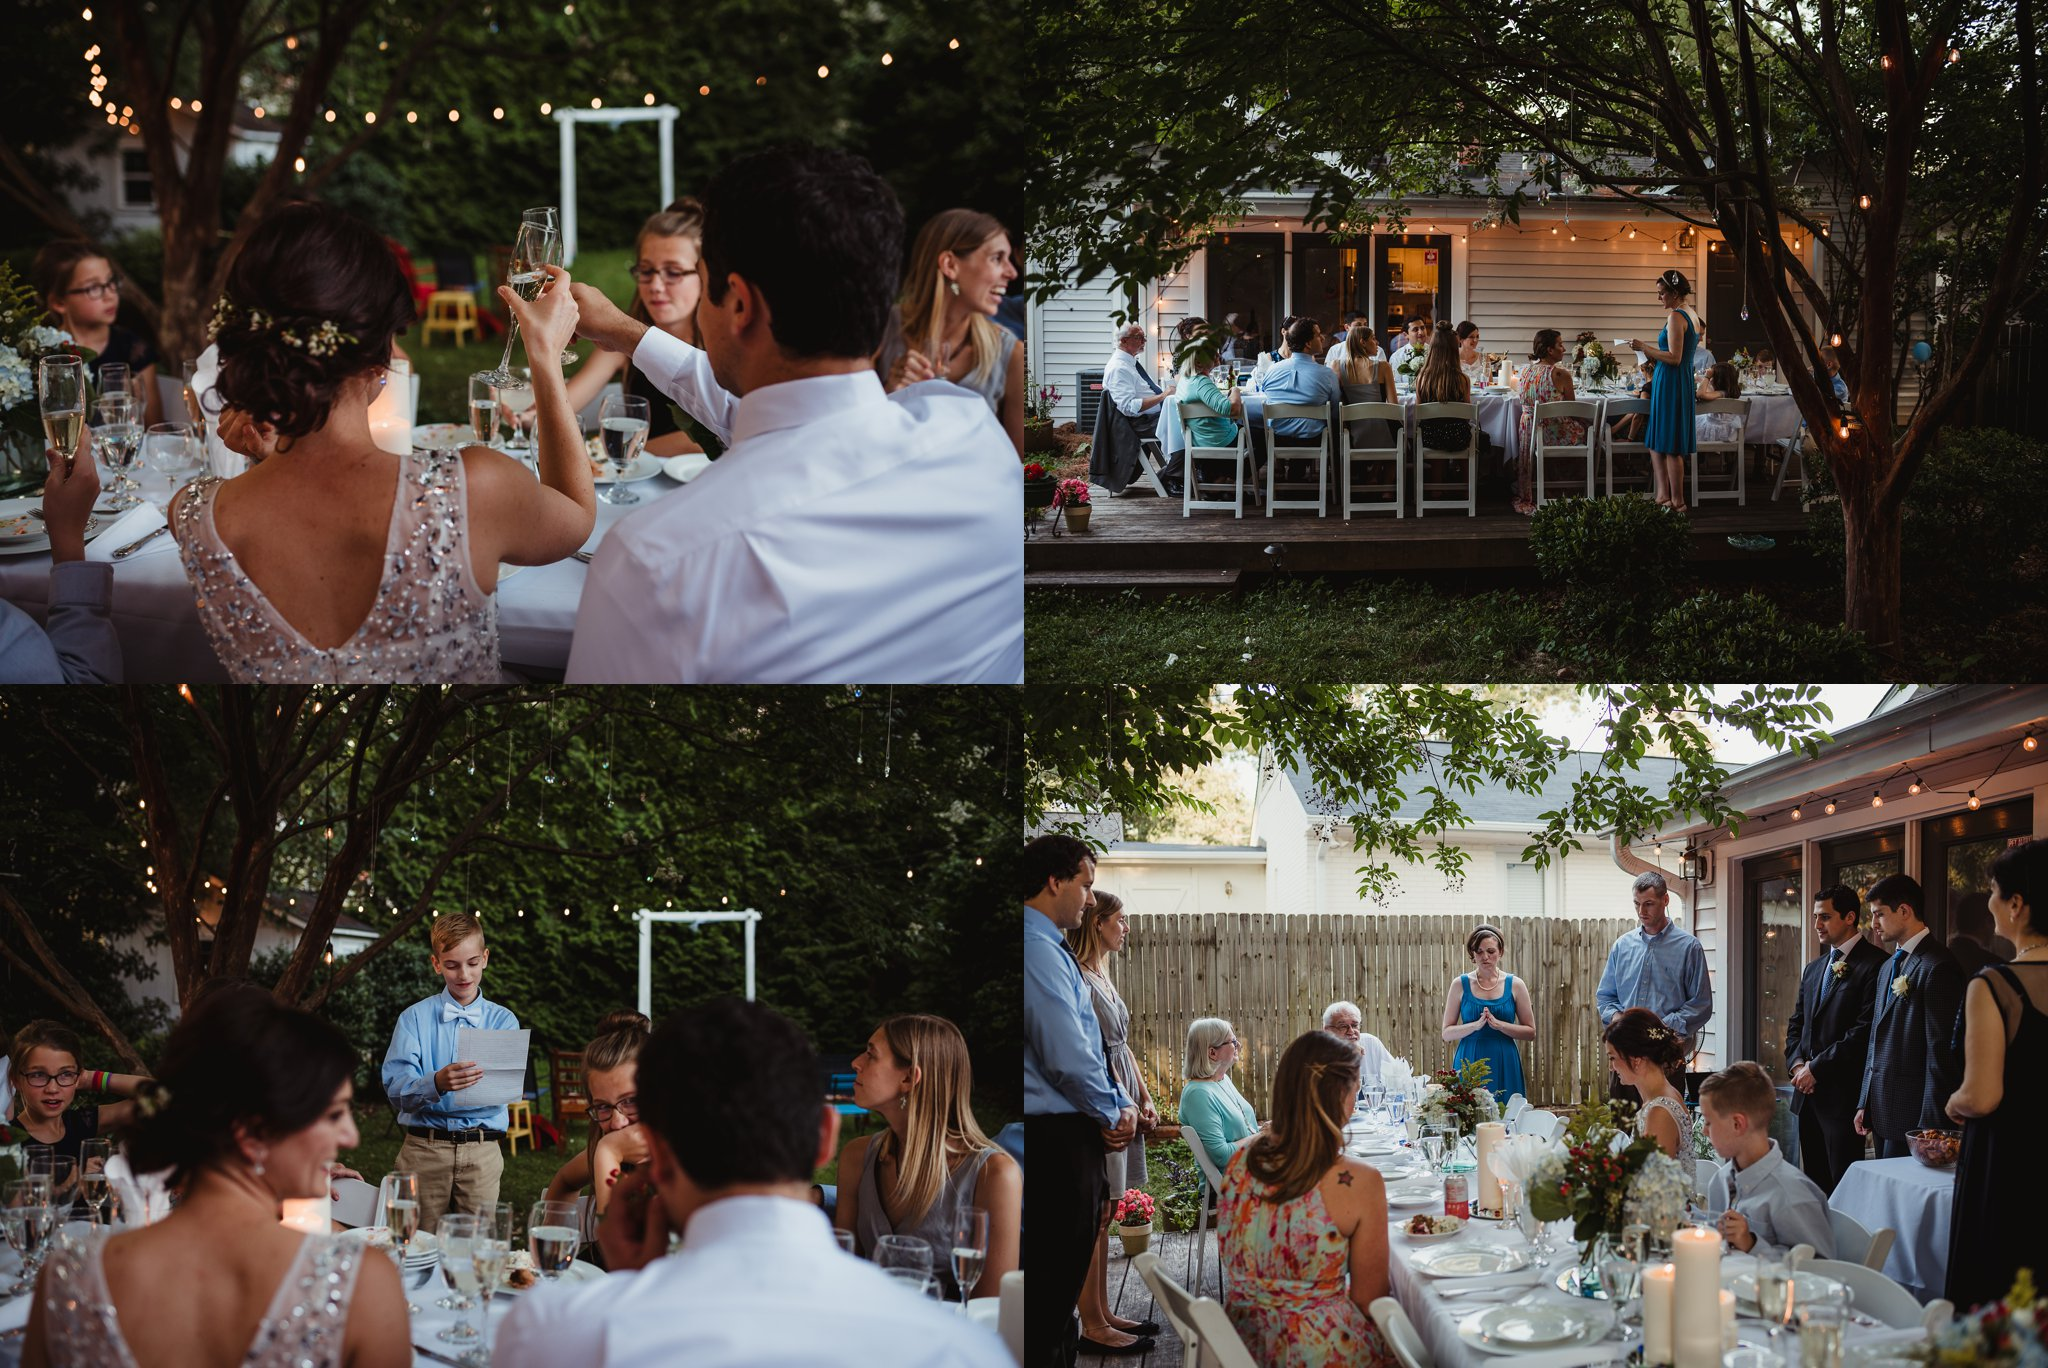 Their intimate wedding reception in their backyard in Raleigh included al fresco dining on the porch under the market lights, photos by Rose Trail Images.